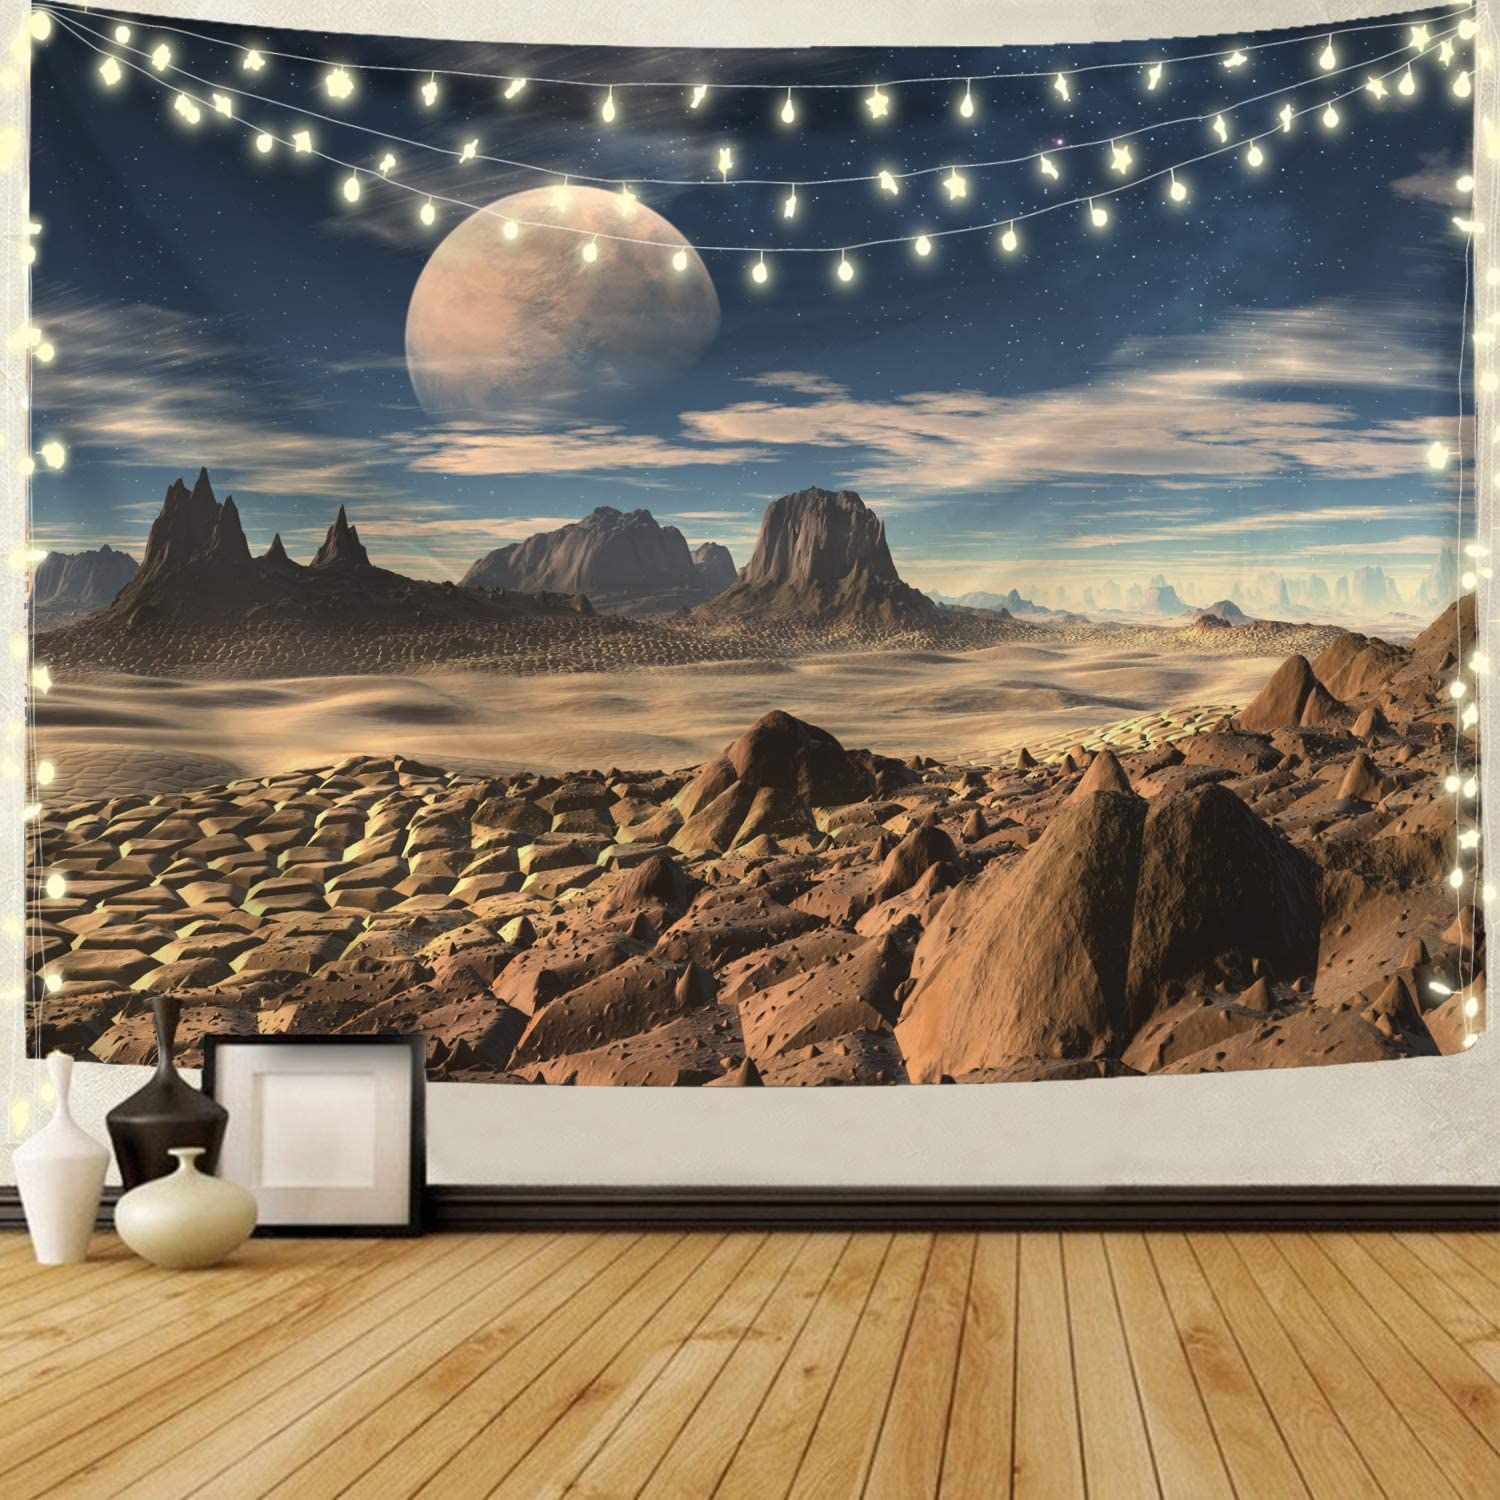 Barixus Hippie Tapestry Wall Hangings Mountain Tapestry Moon Tapestry Nature Landscape Tapestry for Bedroom Living Room Decor Sofa Cover(51.2 x 59.1 inches)